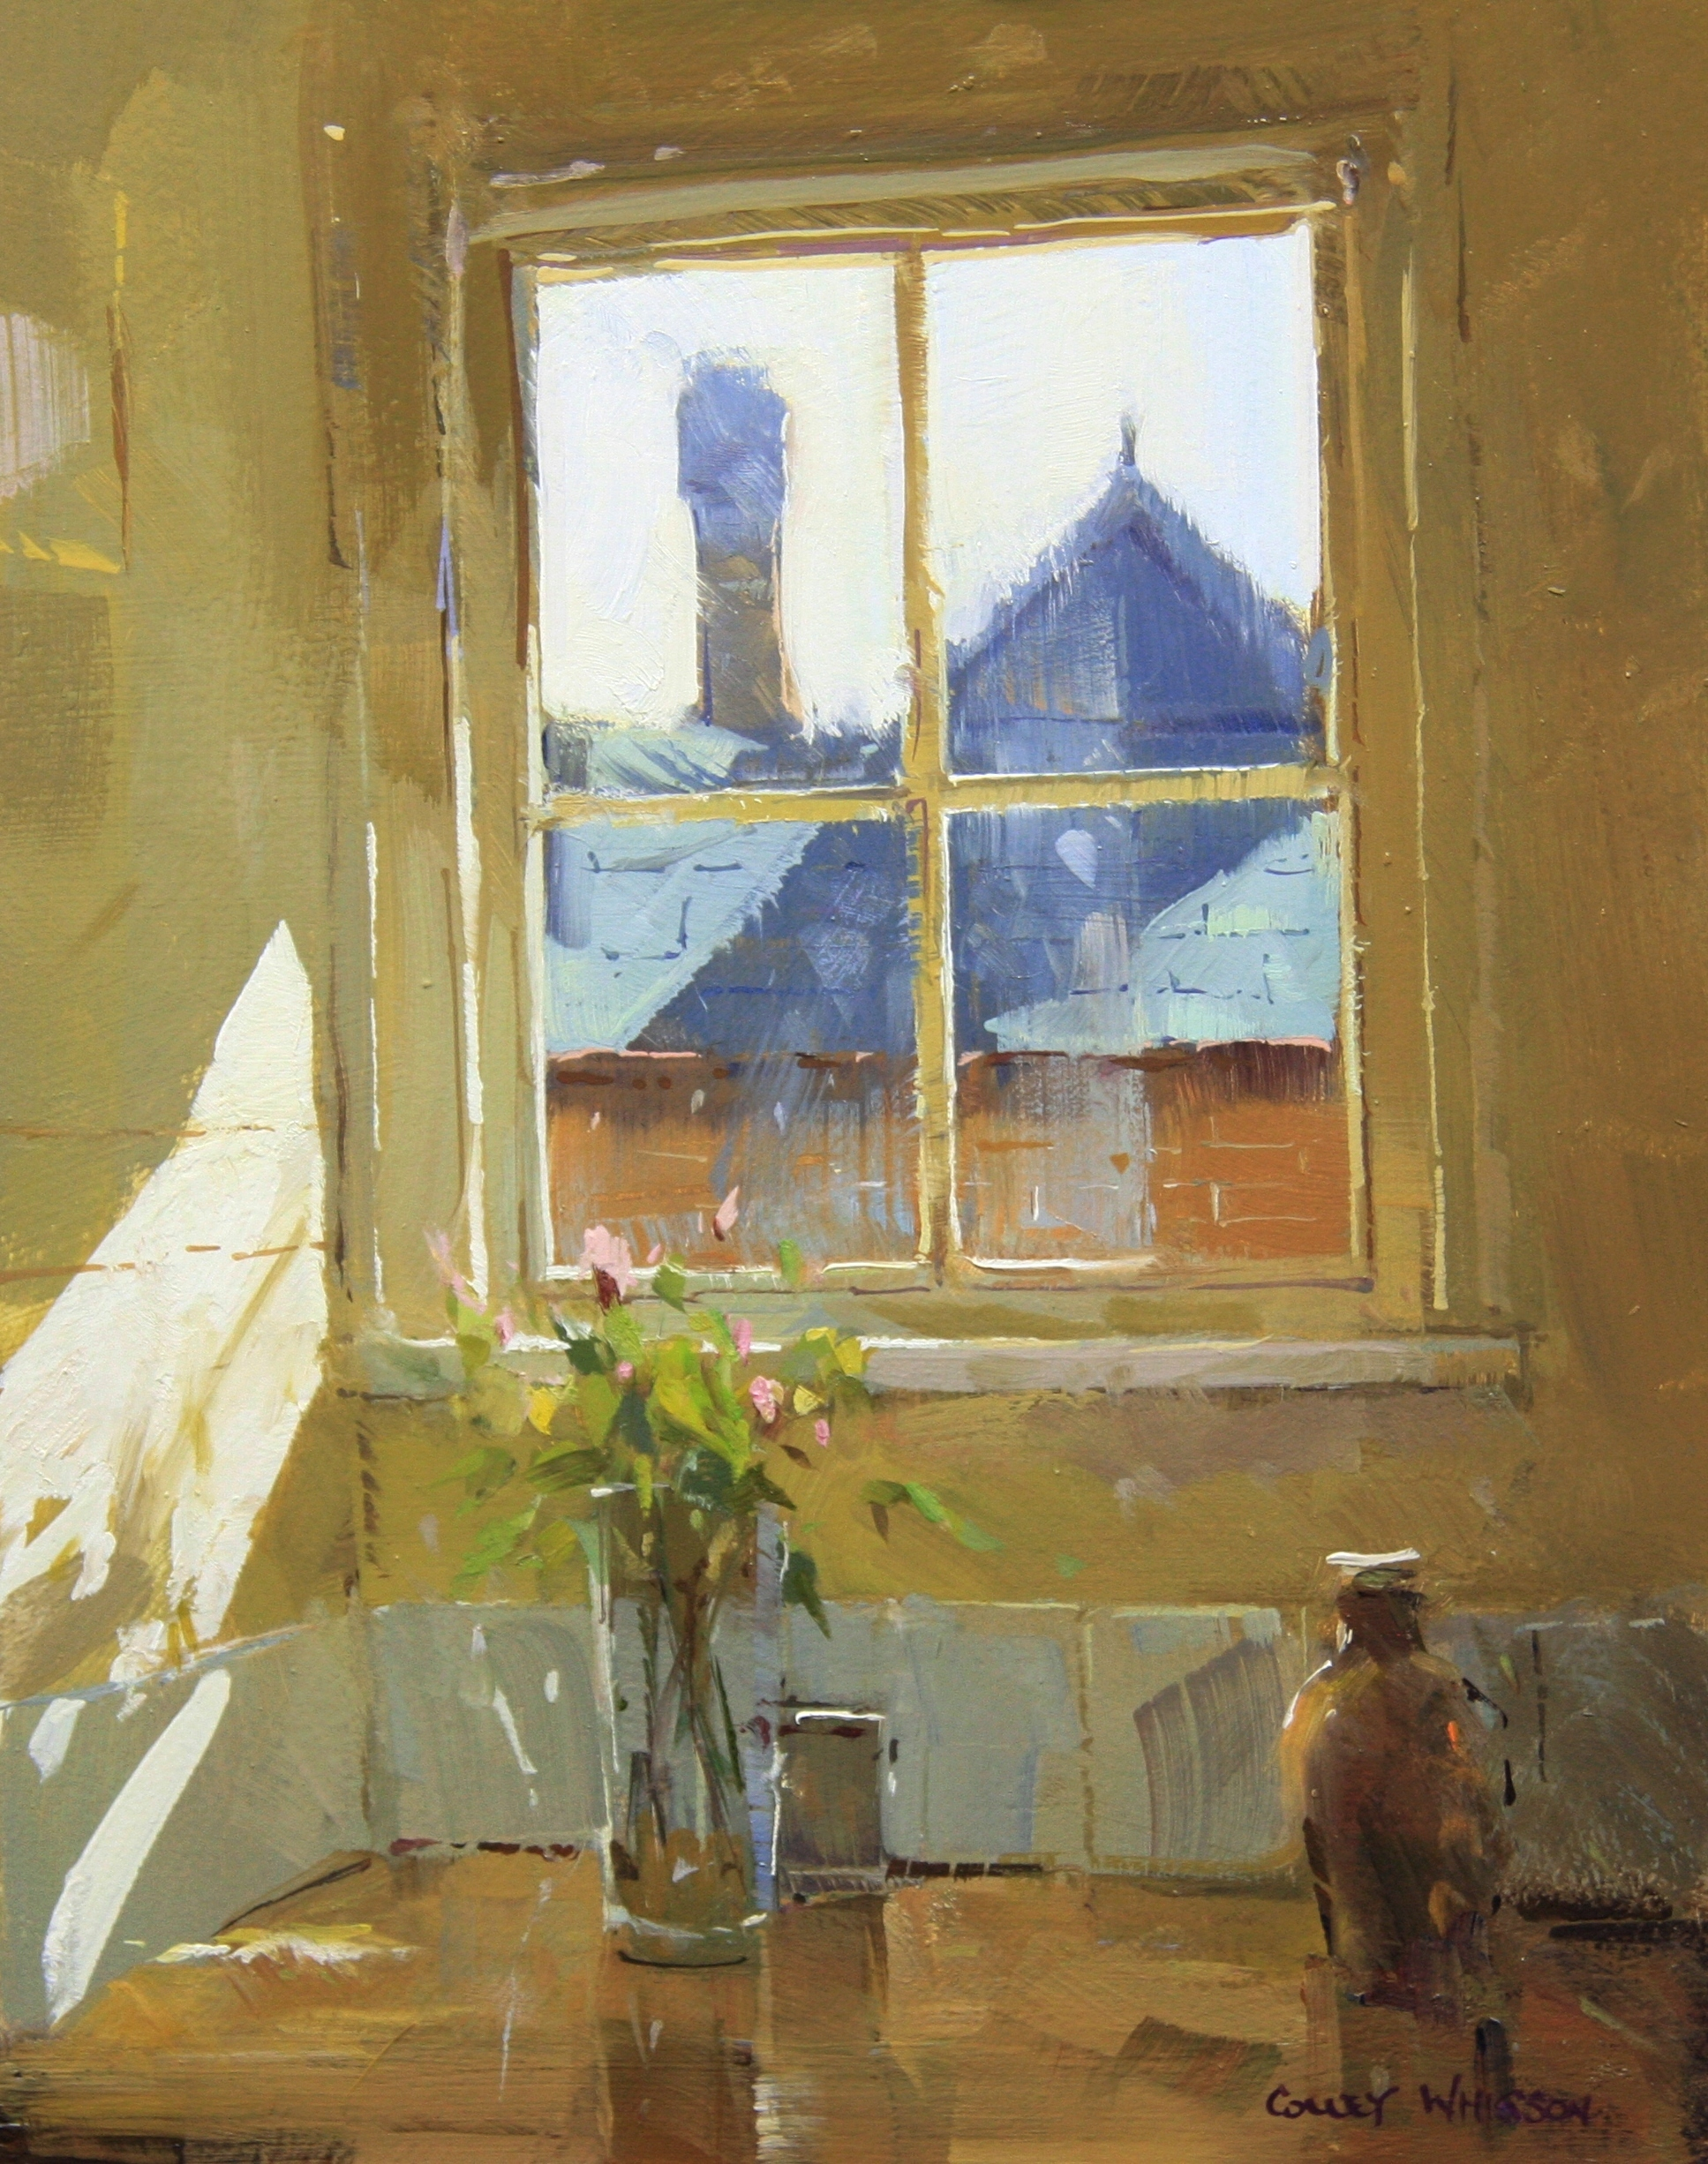 Modern Impressionism in Action - Still Life | Colley Whisson